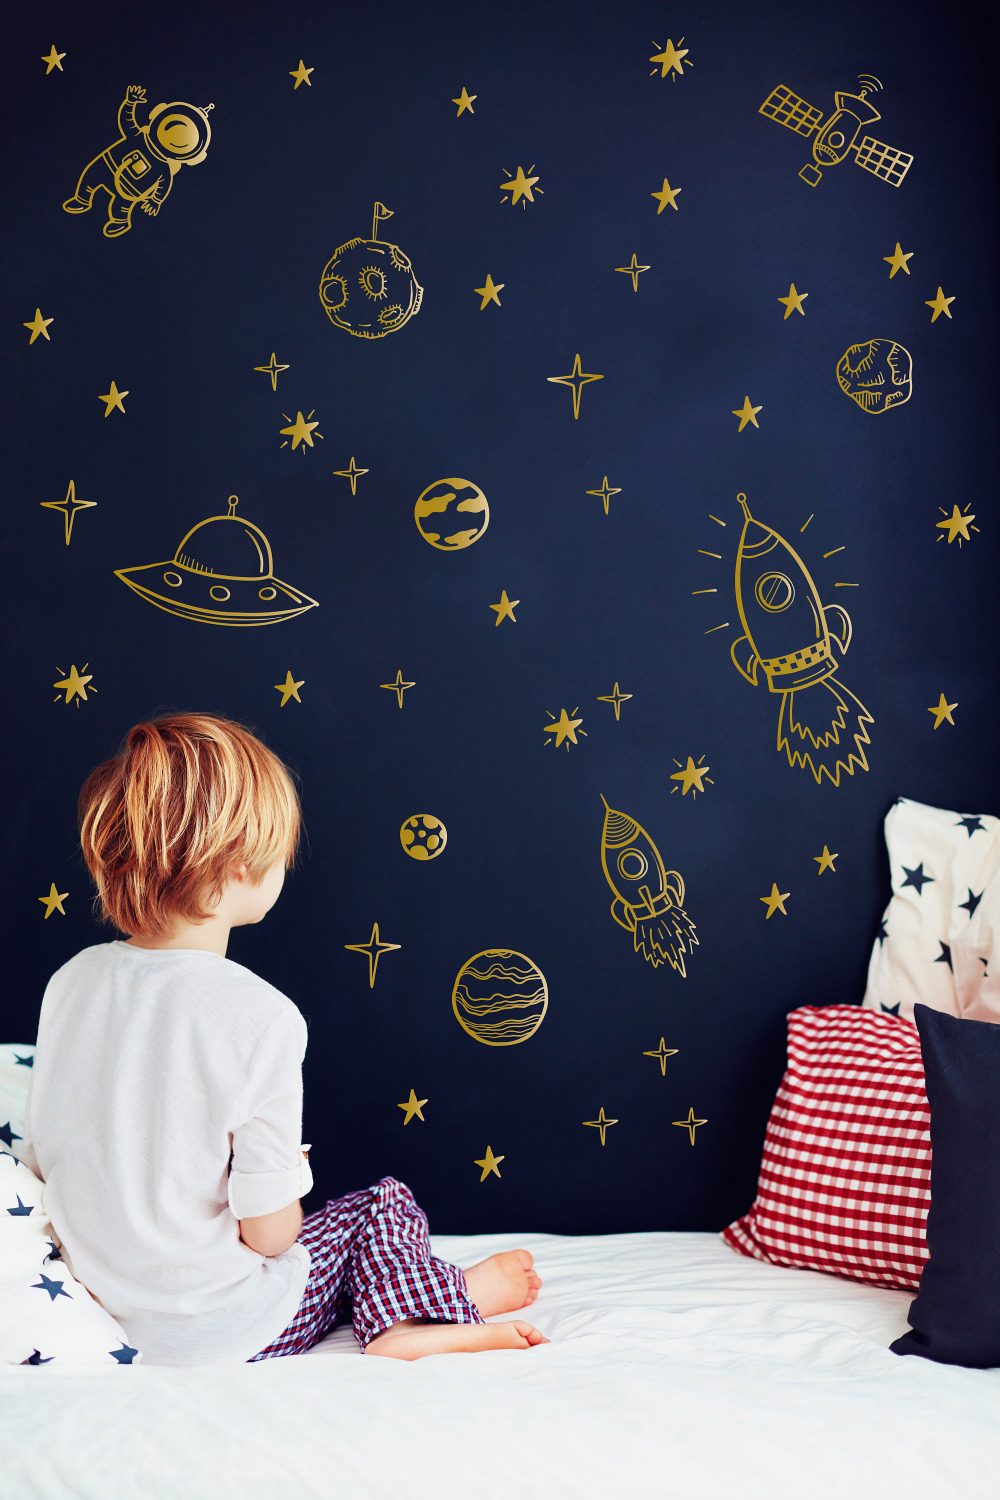 Spaceship Decal Outer Space Wall Decal Spaceman Wall Decal Astronomy Wall Decal Astronaut Wall Decal Planets Stars Boys Room Decor